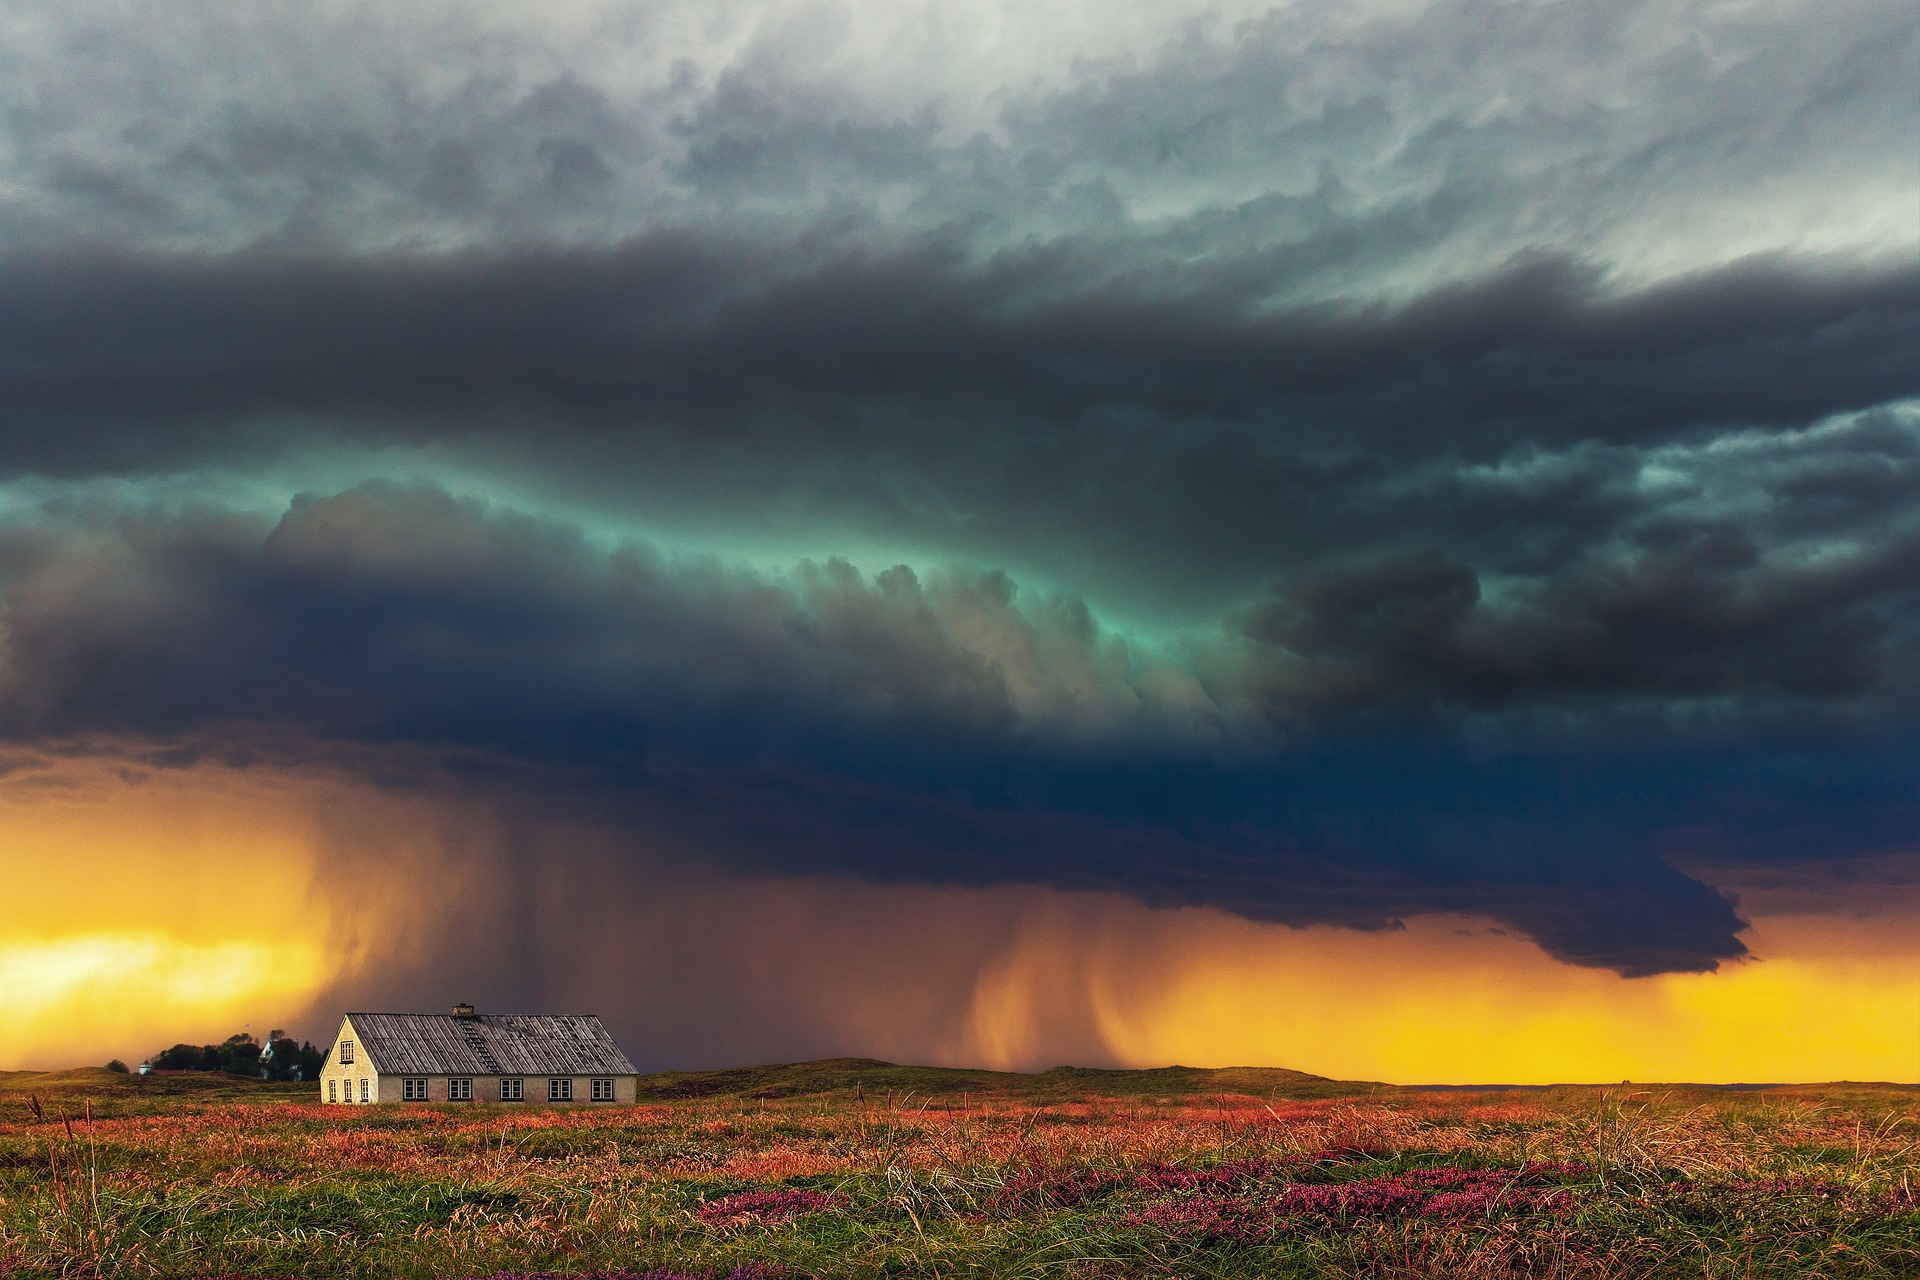 Hymn History – A Shelter in the Time of Storm